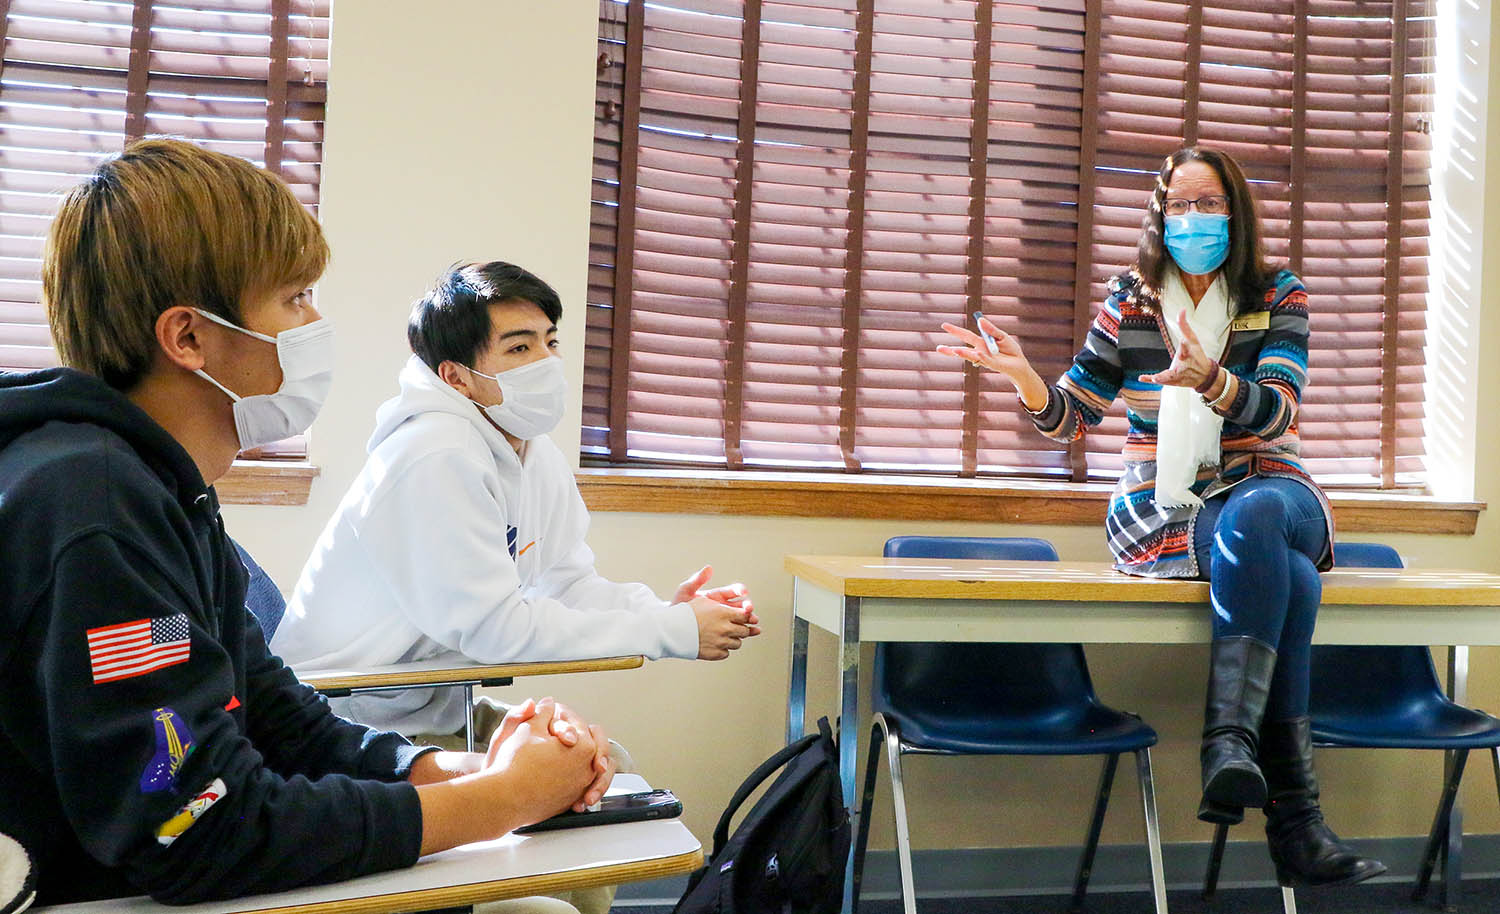 Kyohei Nakamura, left, and Kazuki Ishikawa, center, listen to instructor Lisa Terry as she leads an English Language Institute course. Nakamura and Ishikawa, both from Japan, plan to study aviation at UNK.